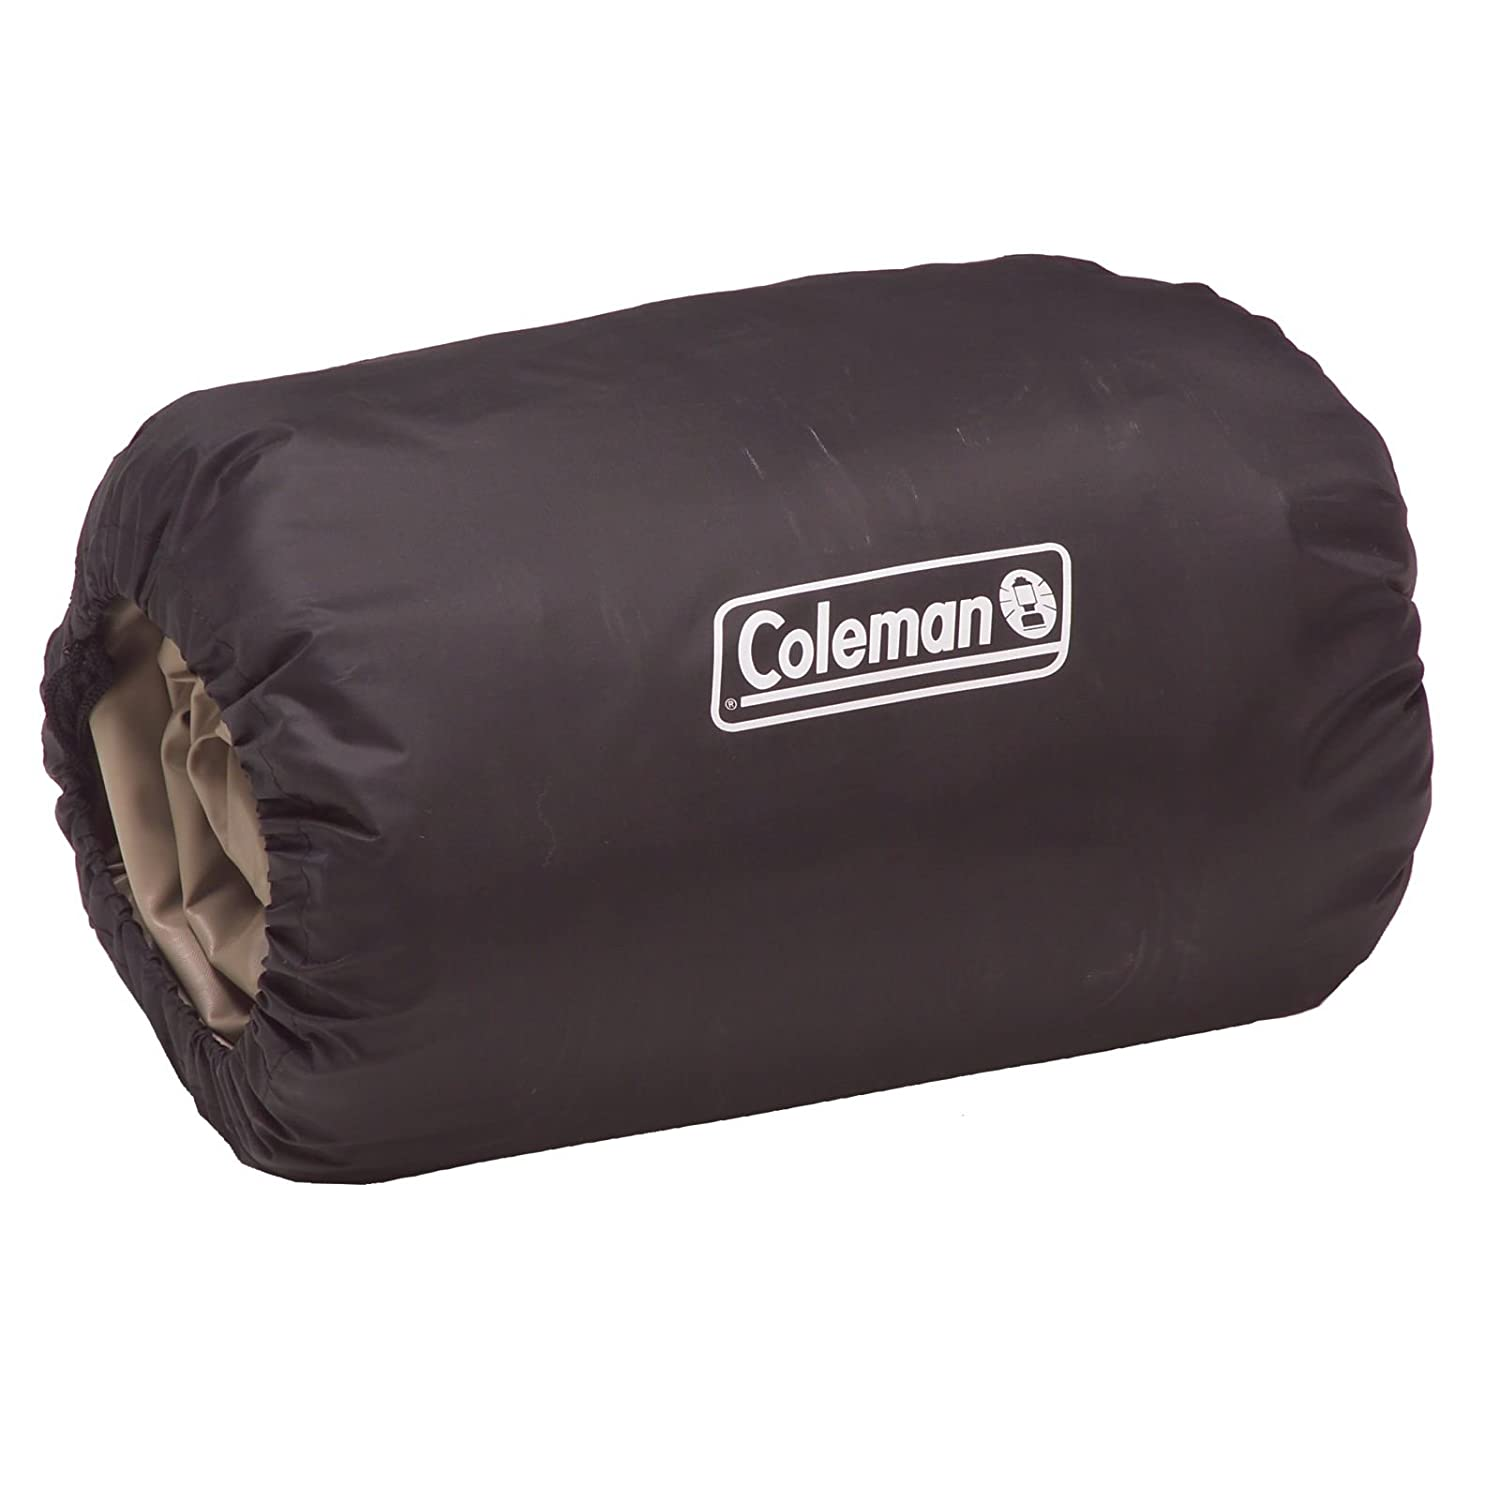 Amazon.com : Coleman Soft Plush Top Inflated Quickbed, Full ...